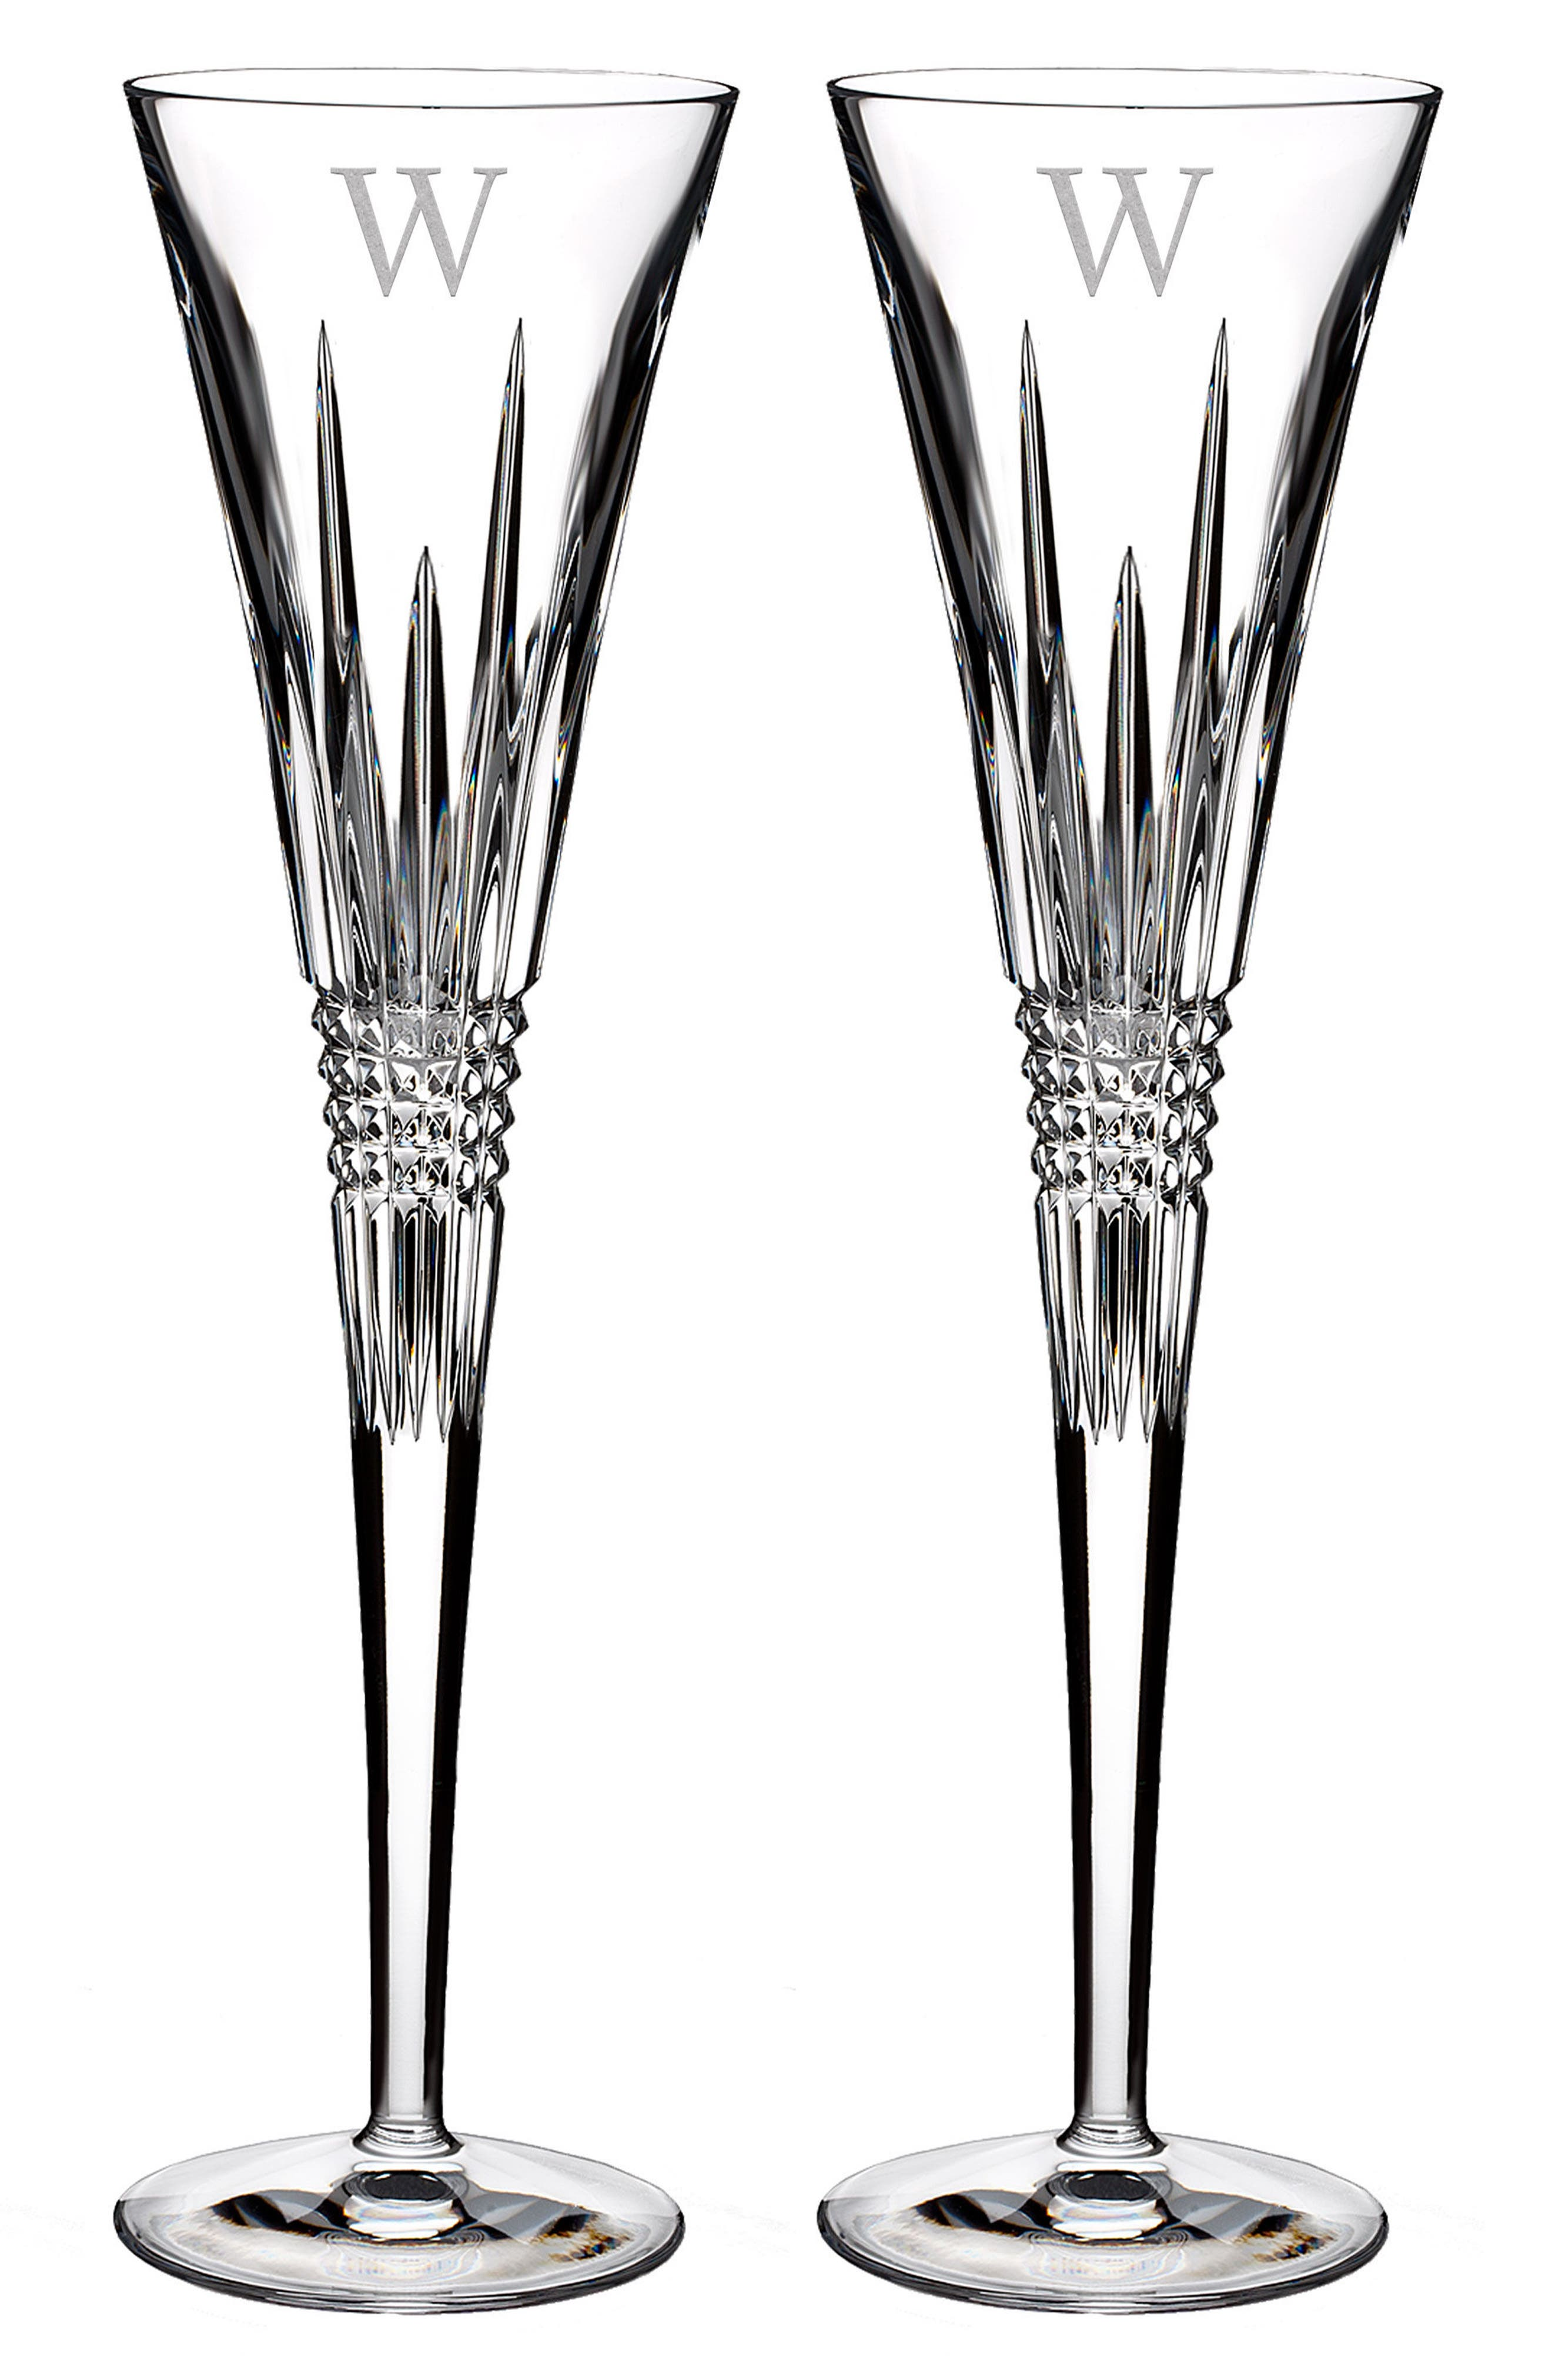 Lismore Diamond Set of 2 Monogram Lead Crystal Champagne Flutes,                         Main,                         color, Clear - W